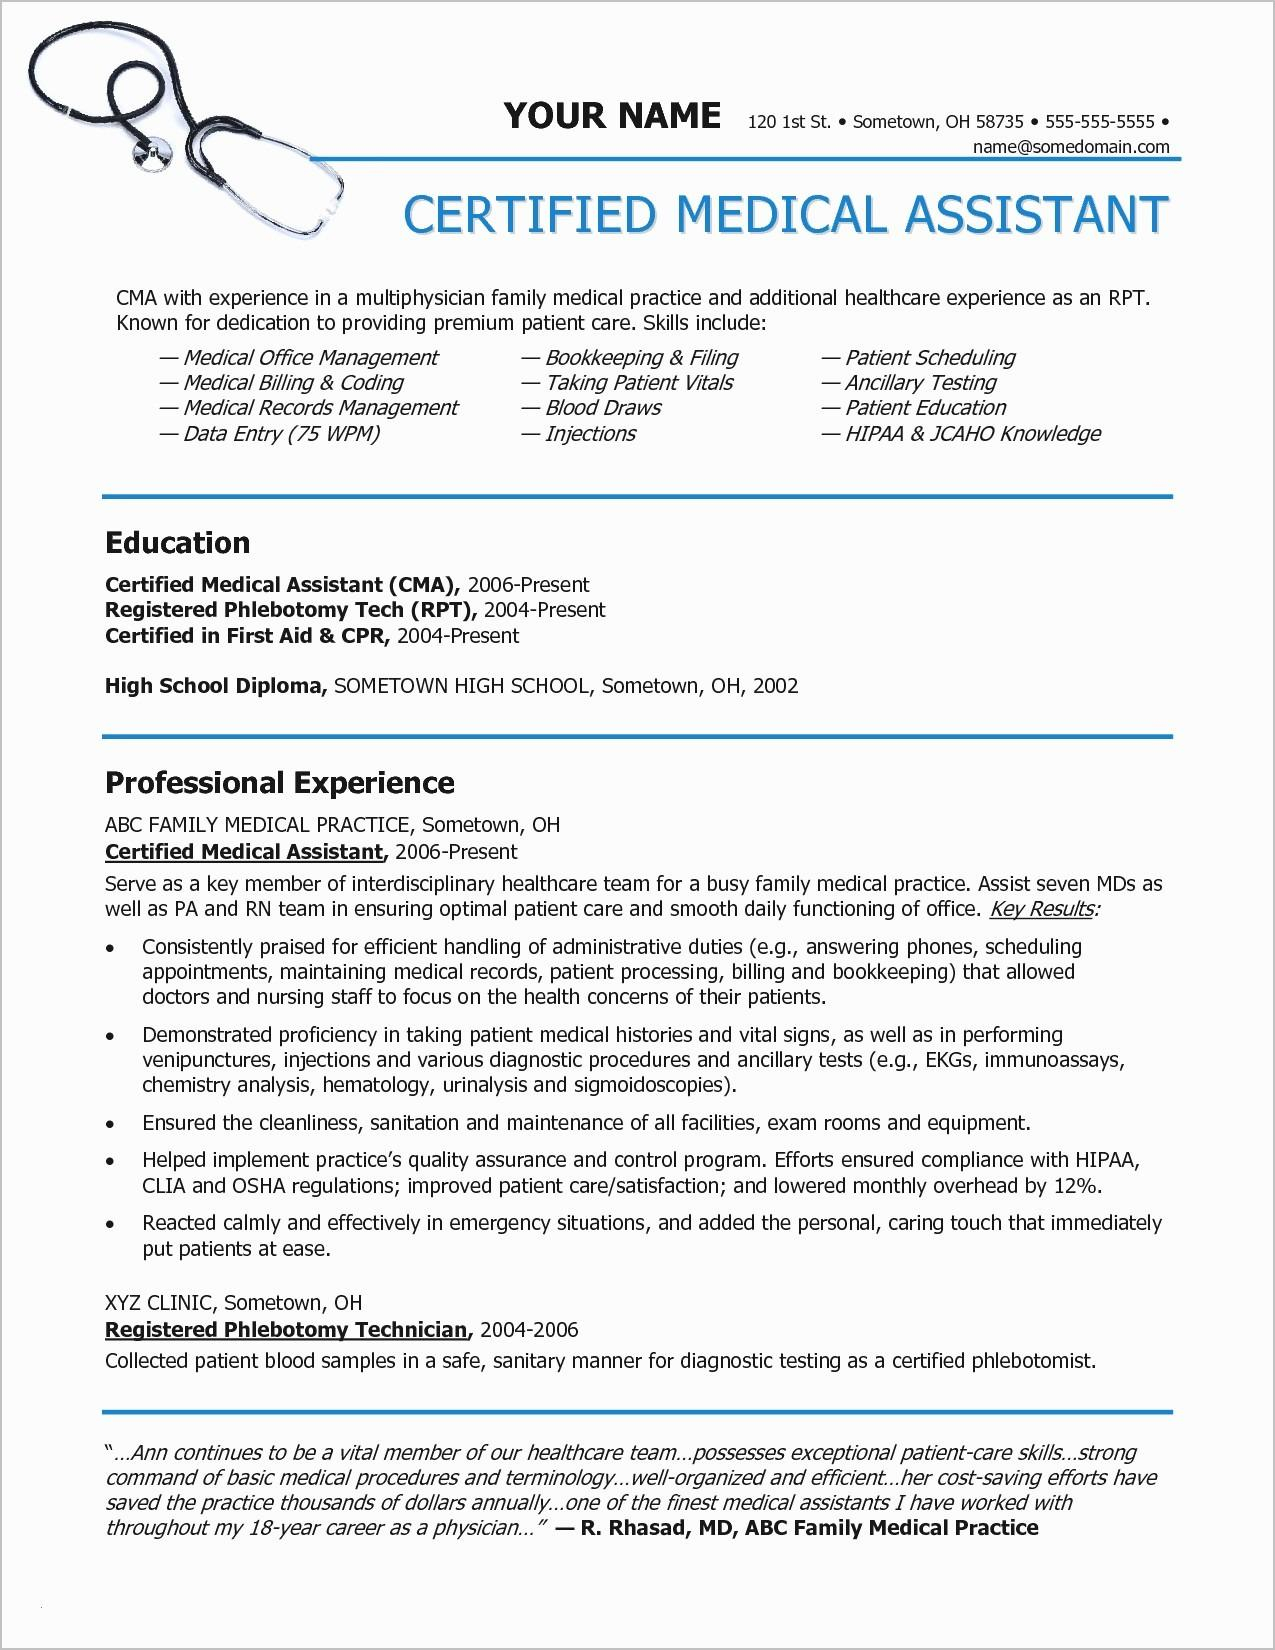 Medical Coder Resume Example - Medical Coding Resume Samples Unique Charming Ideas Medical Coder